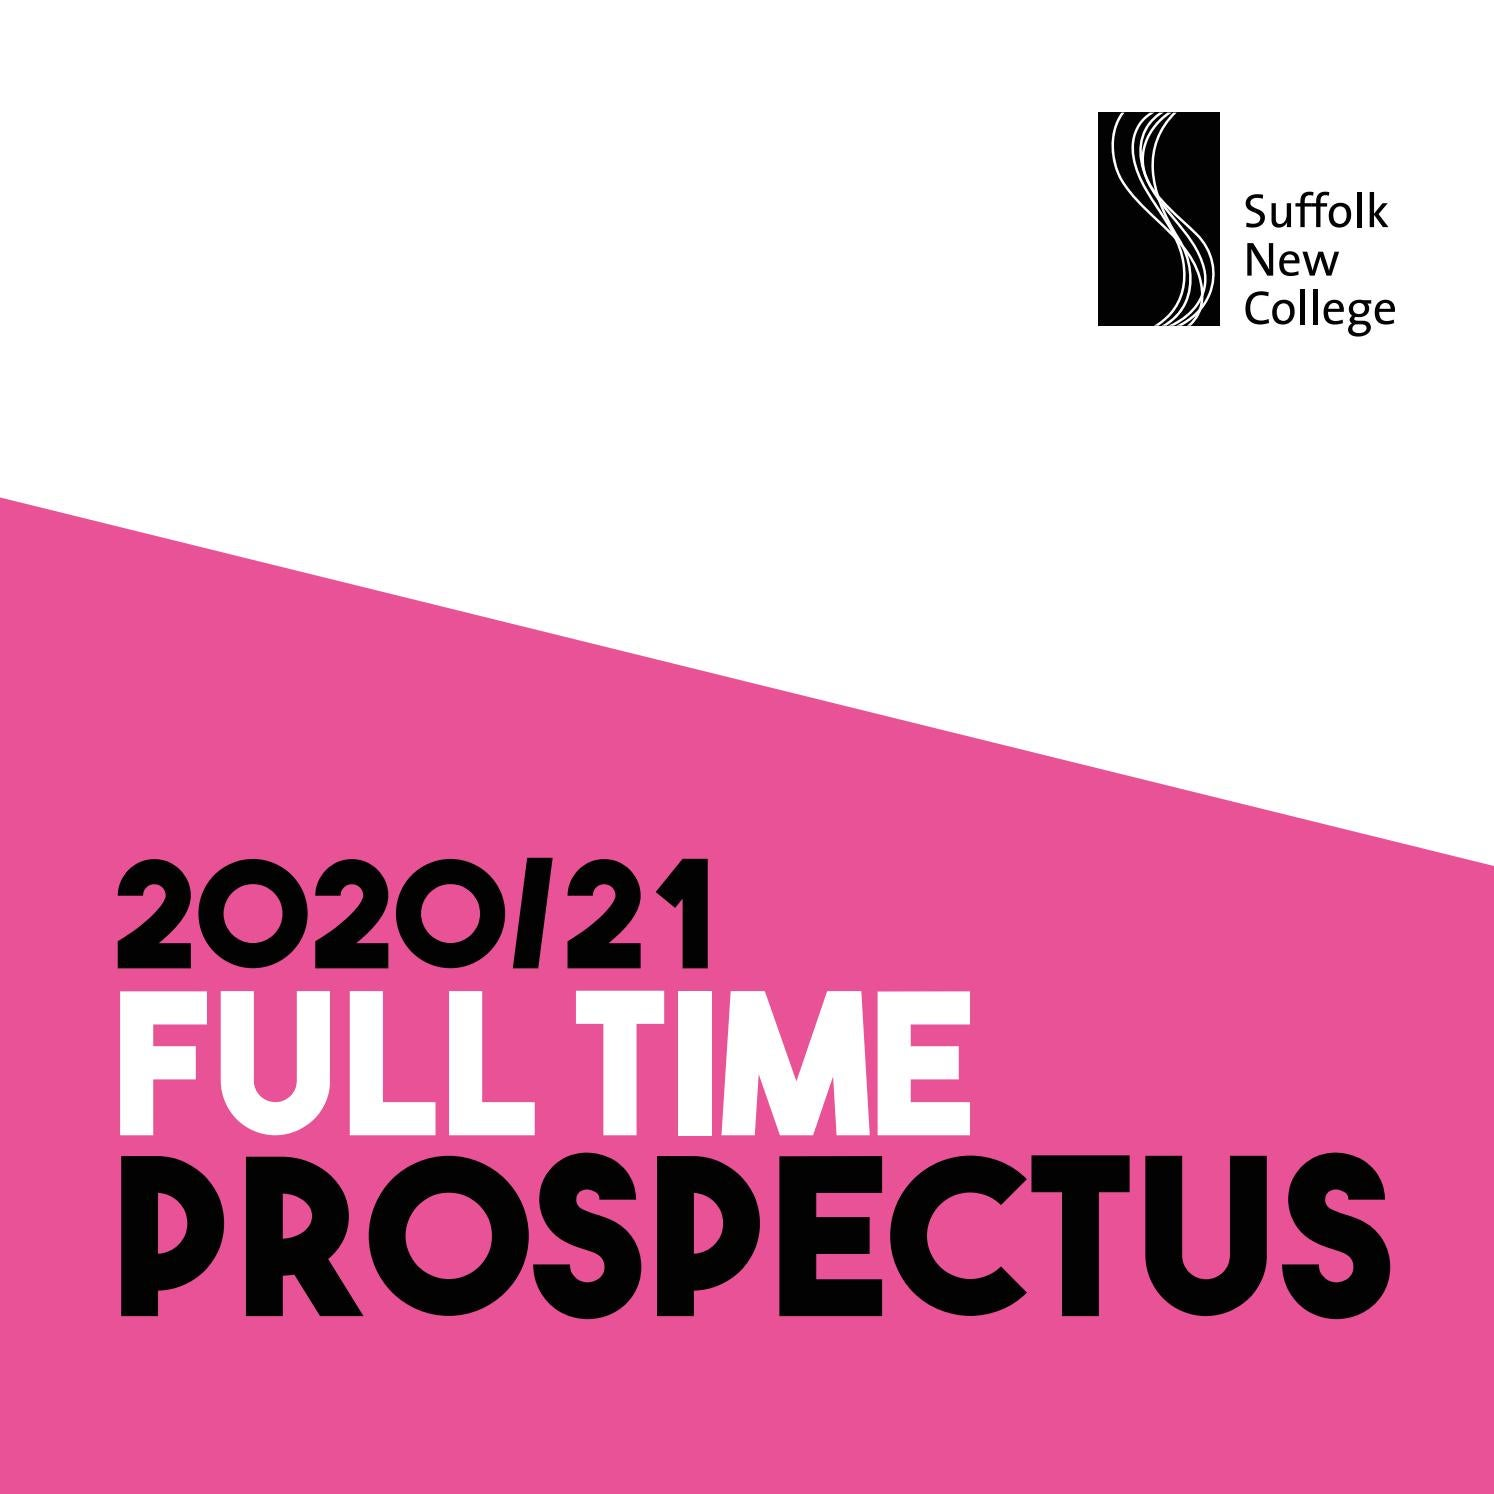 Winter Storm Names 2020 21.2020 21 Prospectus By Suffolk New College Issuu